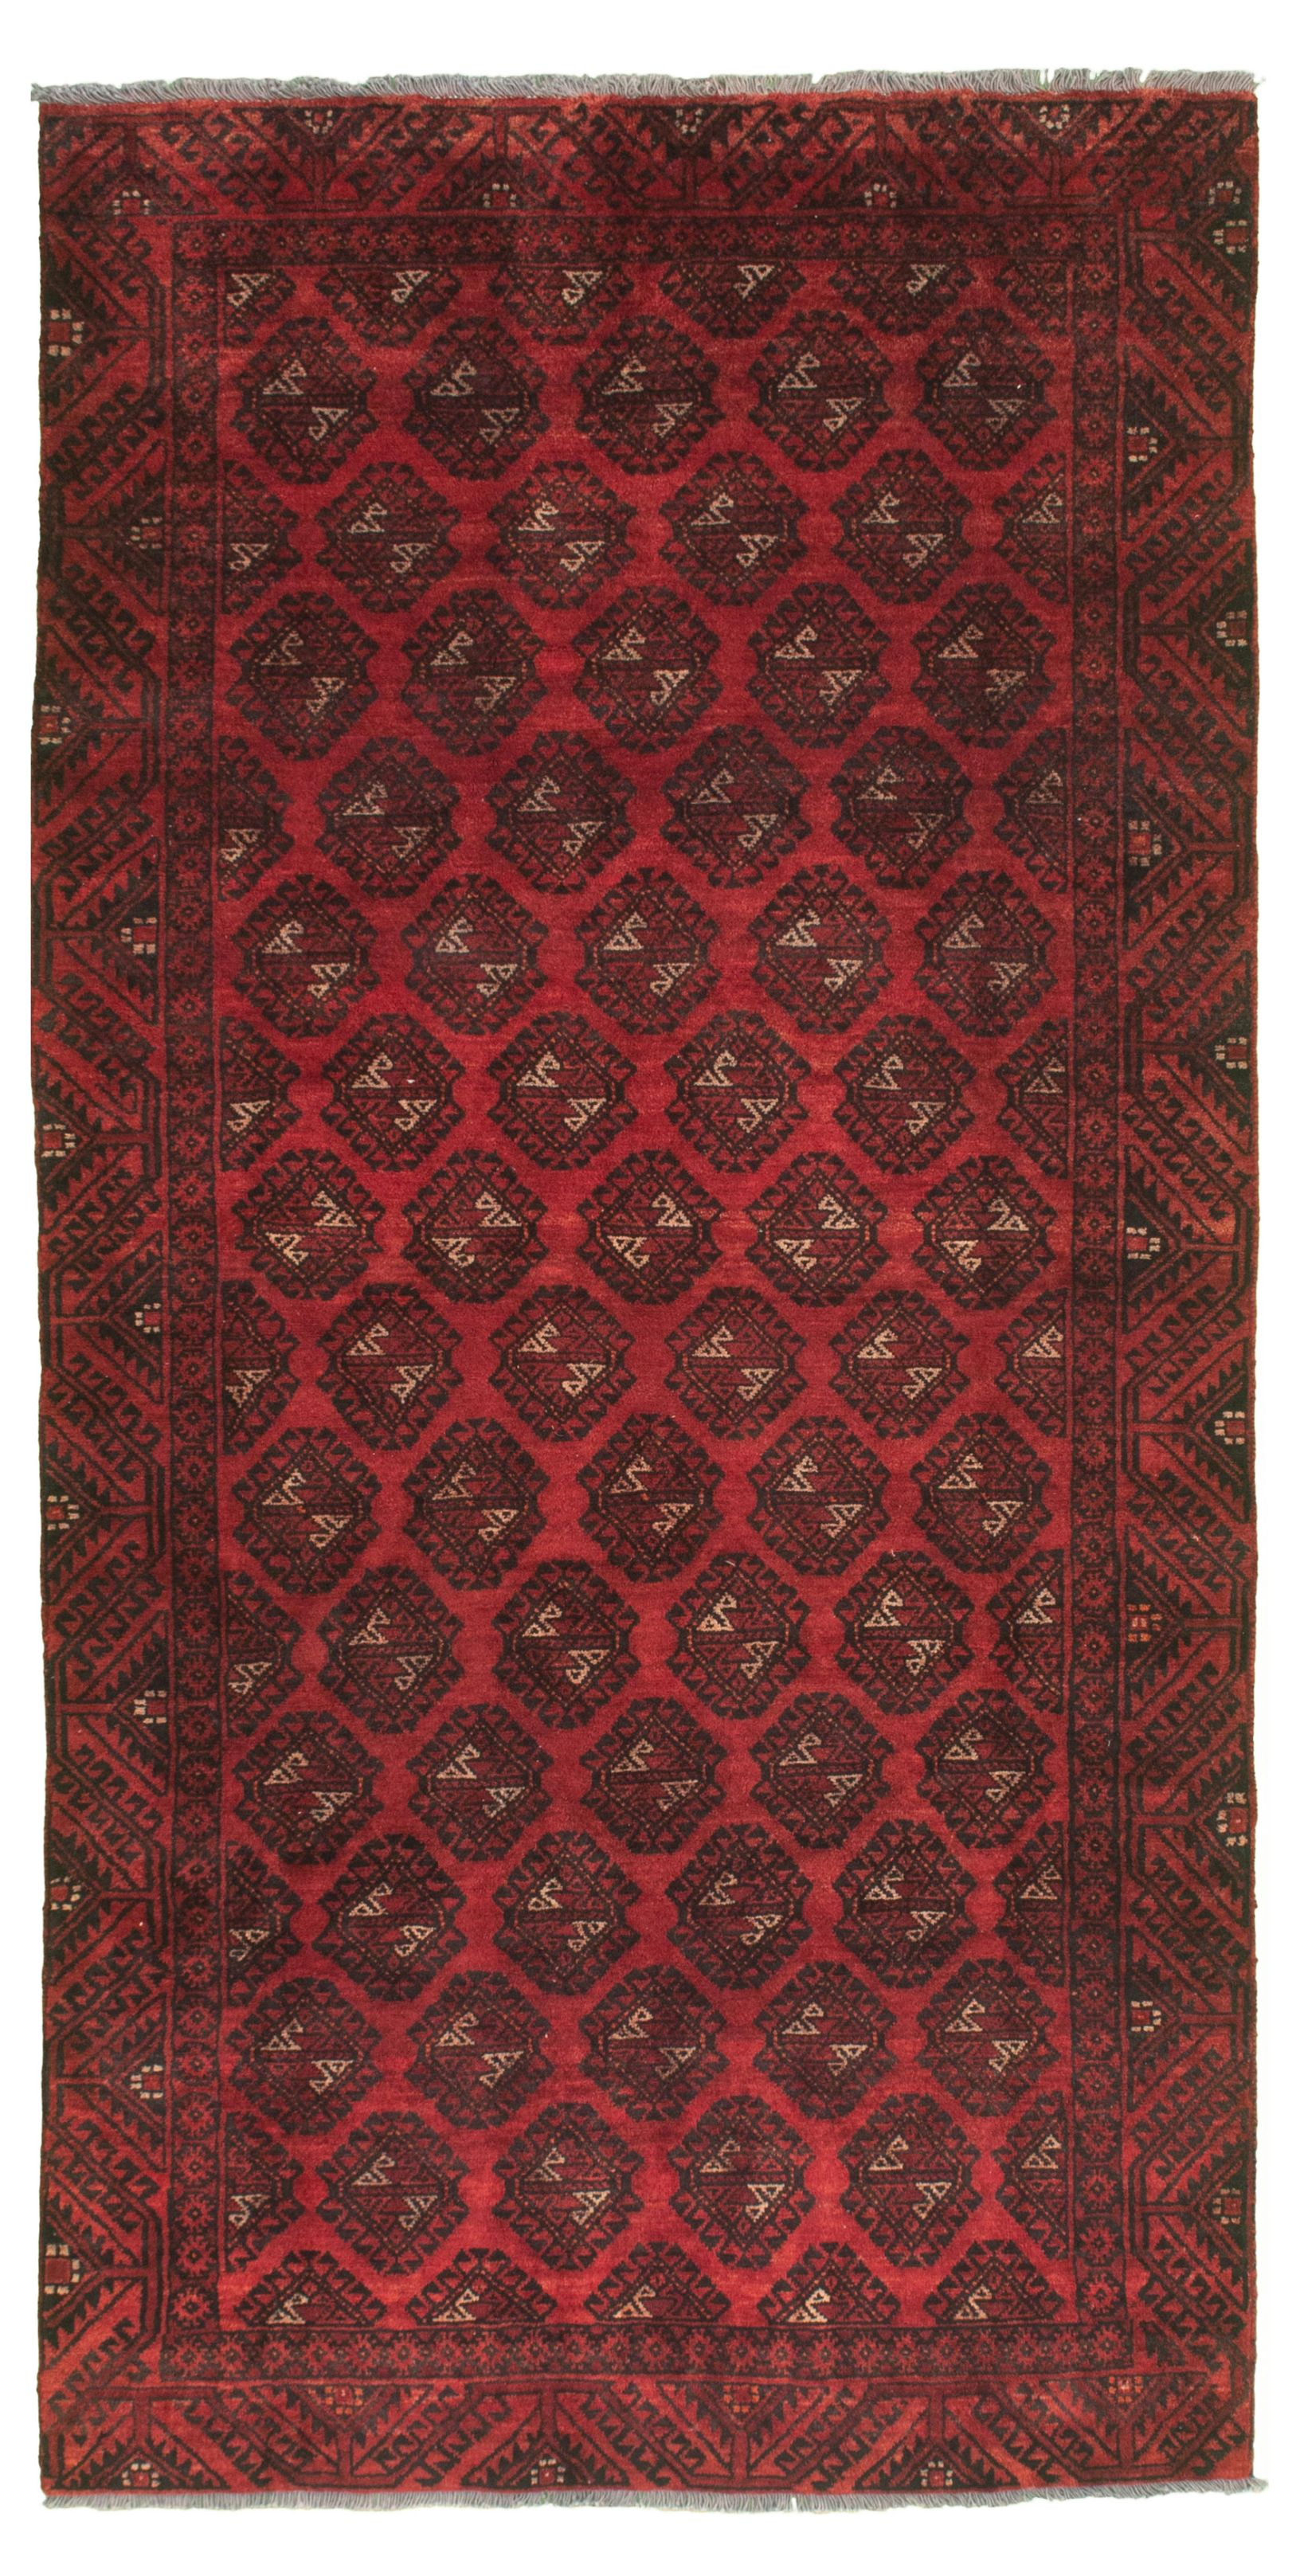 "Hand-knotted Authentic Turkish Red Wool Rug 4'6"" x 9'0"" Size: 4'6"" x 9'0"""